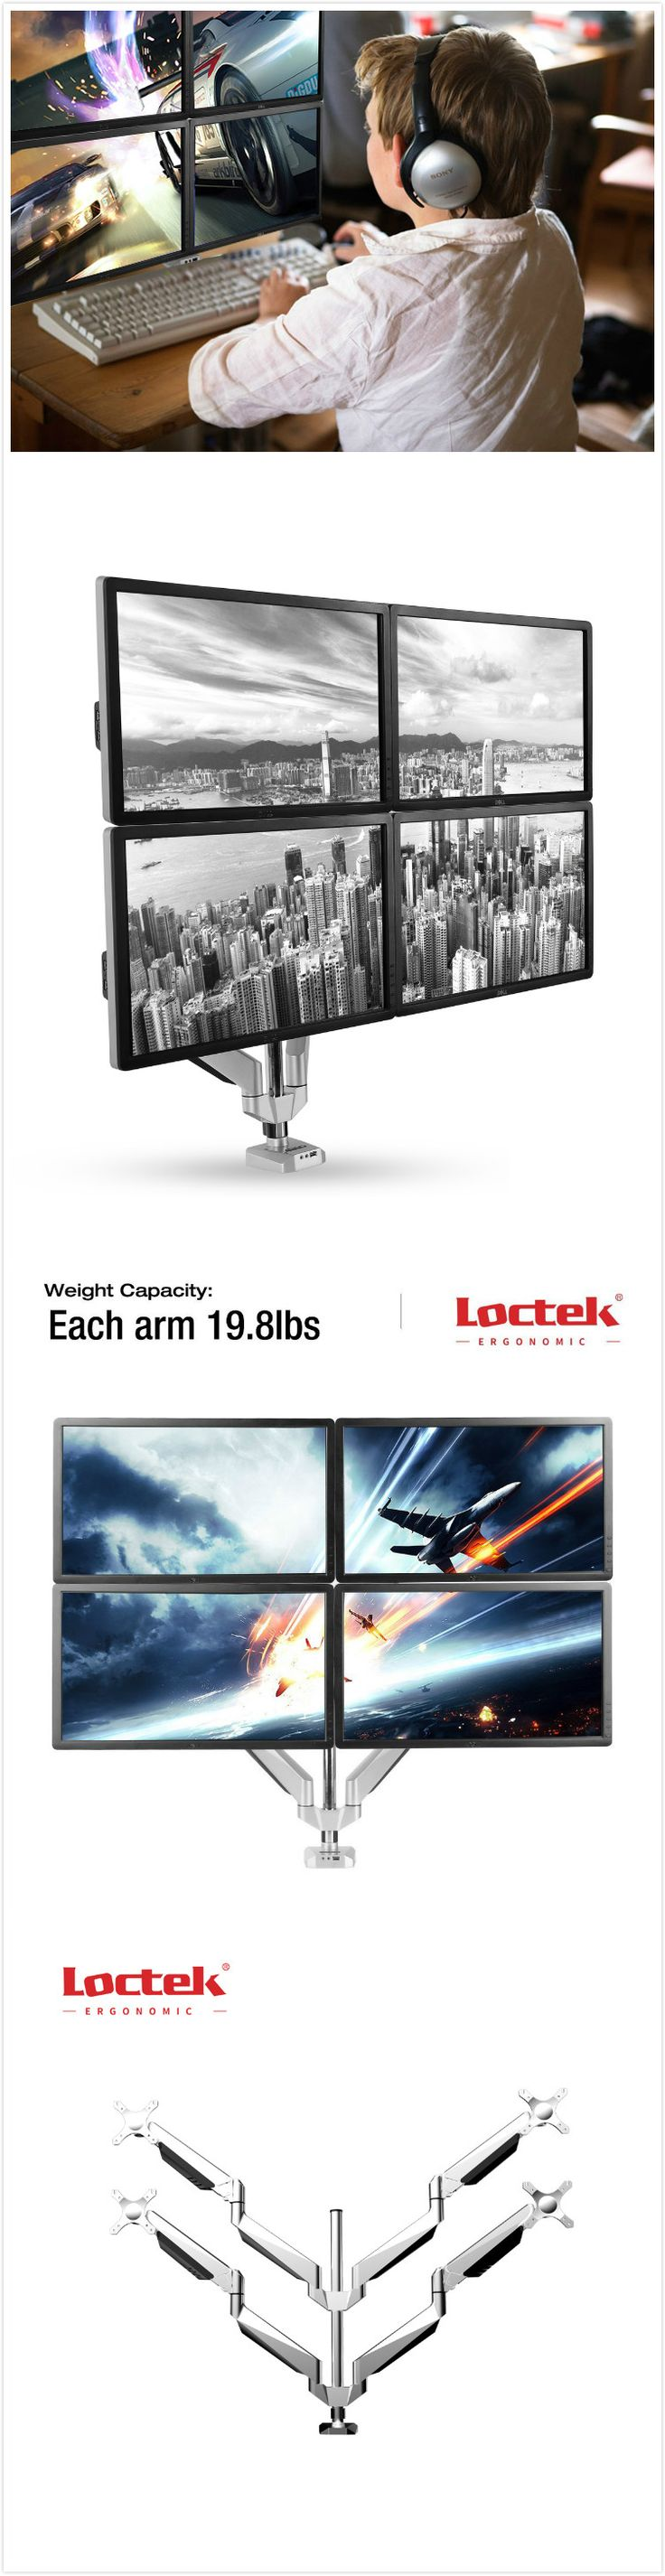 This premium four arm computer monitor mount offers an attractive way to display four monitors while saving the most amount of desk space. All arms easily adjust, allowing you to work in a more comfortable, ergonomically correct position. Learn more at http://loctek.us/product/four-arm-desk-computer-monitor-mount-wusb-d7q/